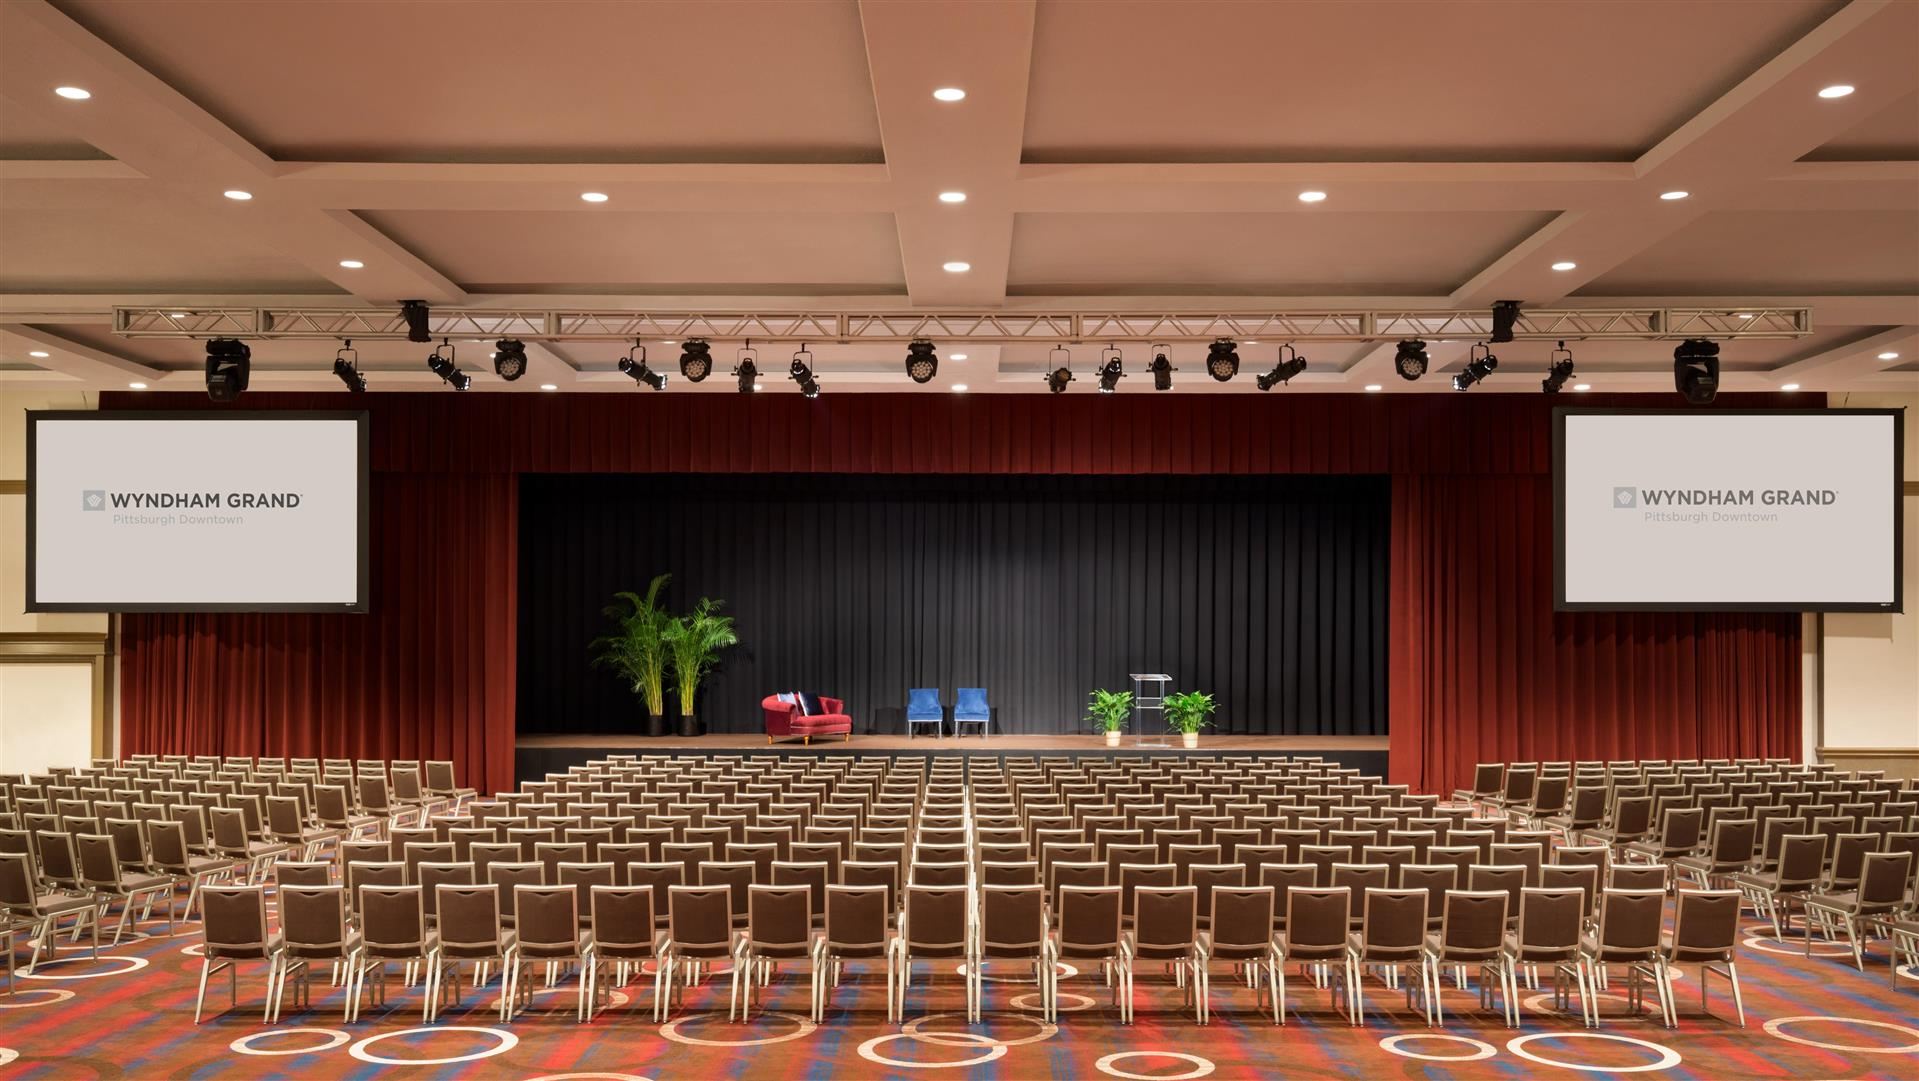 Meetings and events at Wyndham Grand Pittsburgh Downtown ... on university of pittsburgh oakland campus map, downtown dallas map, pittsburgh county map, downtown pittsburgh parking lot map, hotels magnificent mile map, pittsburgh street map, pittsburgh ohio river map, pittsburgh on map, bike pittsburgh map, downtown pittsburgh attractions map, detailed downtown pittsburgh map, hotels ann arbor map, pittsburgh downtown building map, parking garages downtown pittsburgh map, pittsburgh pa city map, st. louis mo map, hotels las vegas strip map, shopping downtown pittsburgh map, printable downtown pittsburgh map, pittsburgh pa airport map,